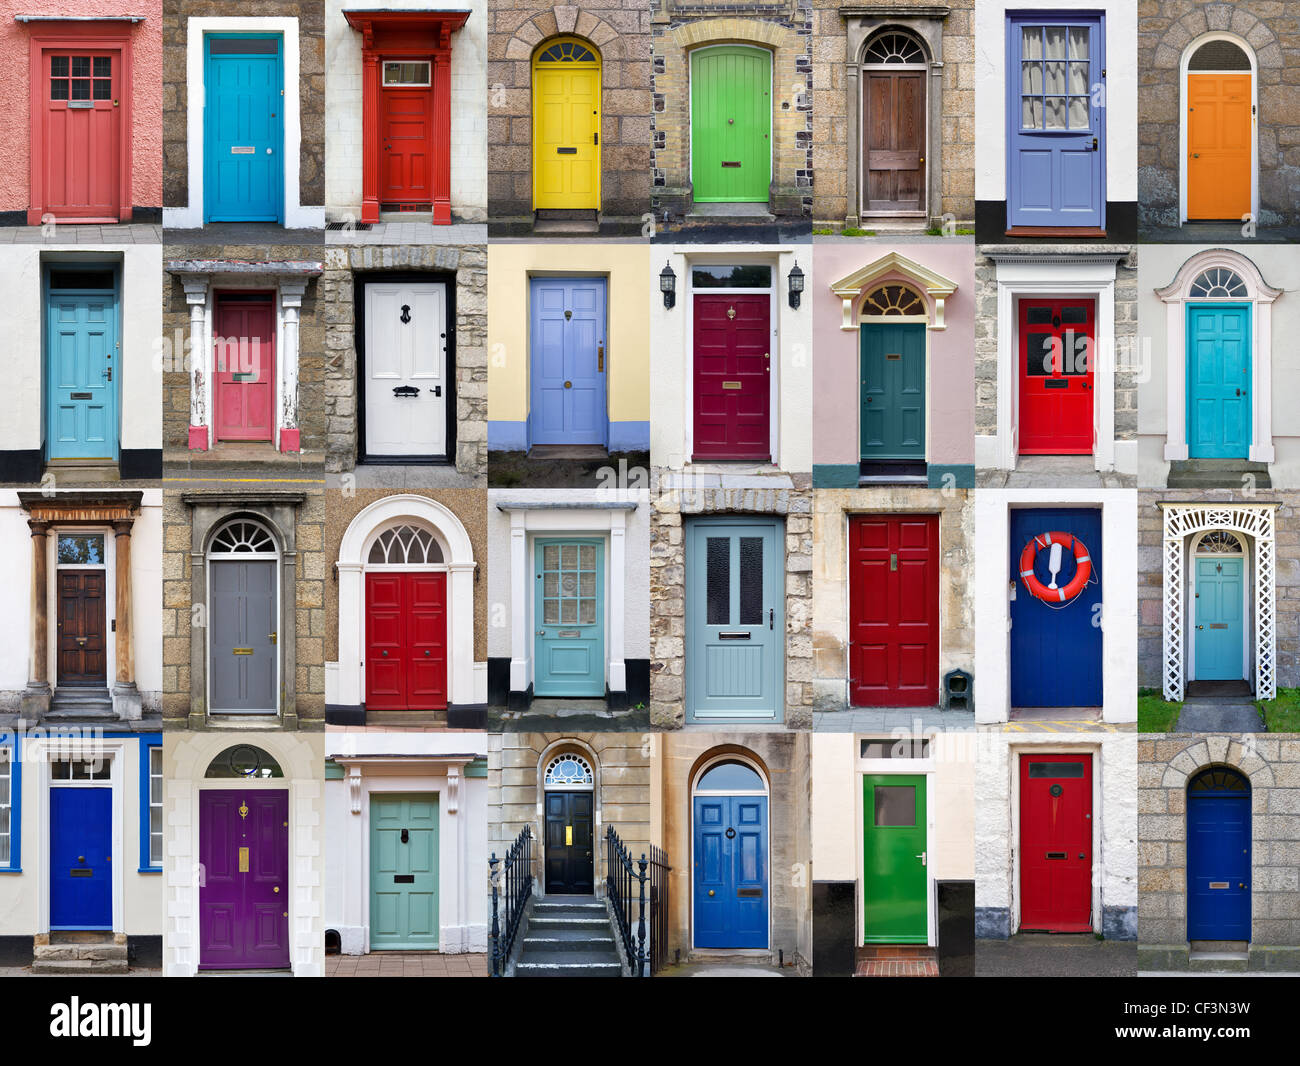 A photo collage of 32 colourful front doors to houses and homes - Stock Image